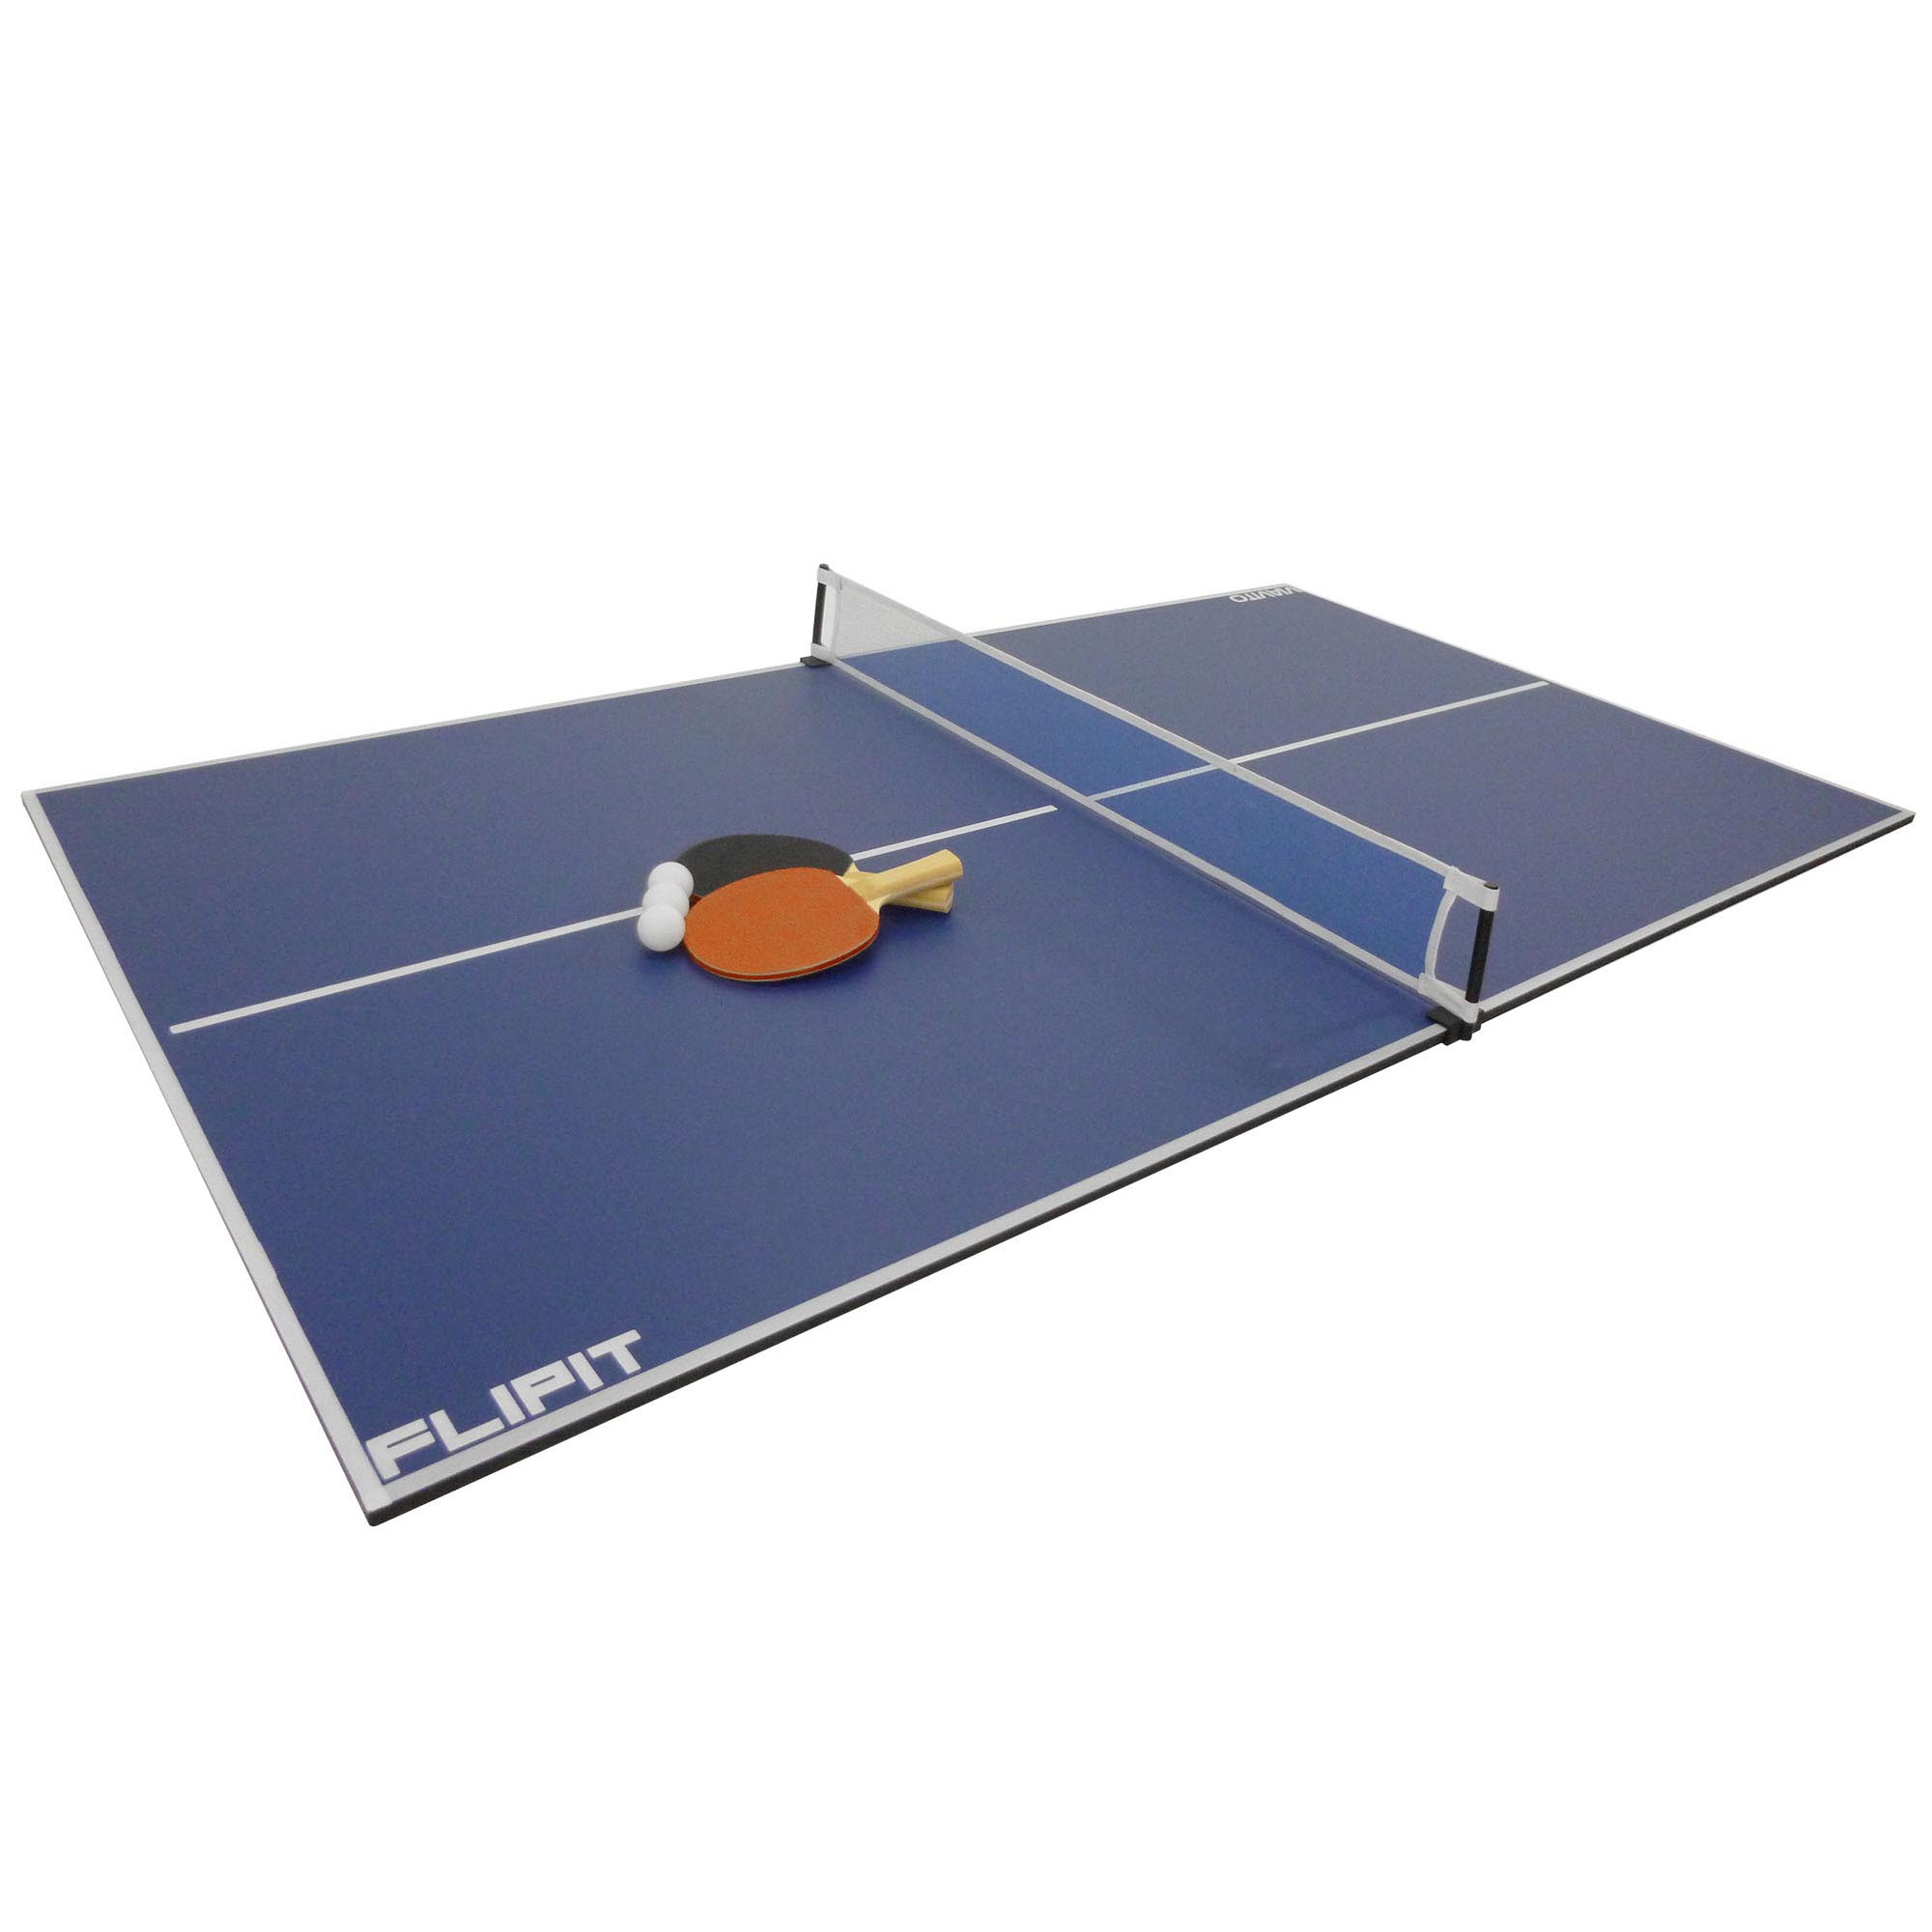 Ping pong table top - Ping Pong Table Top 51